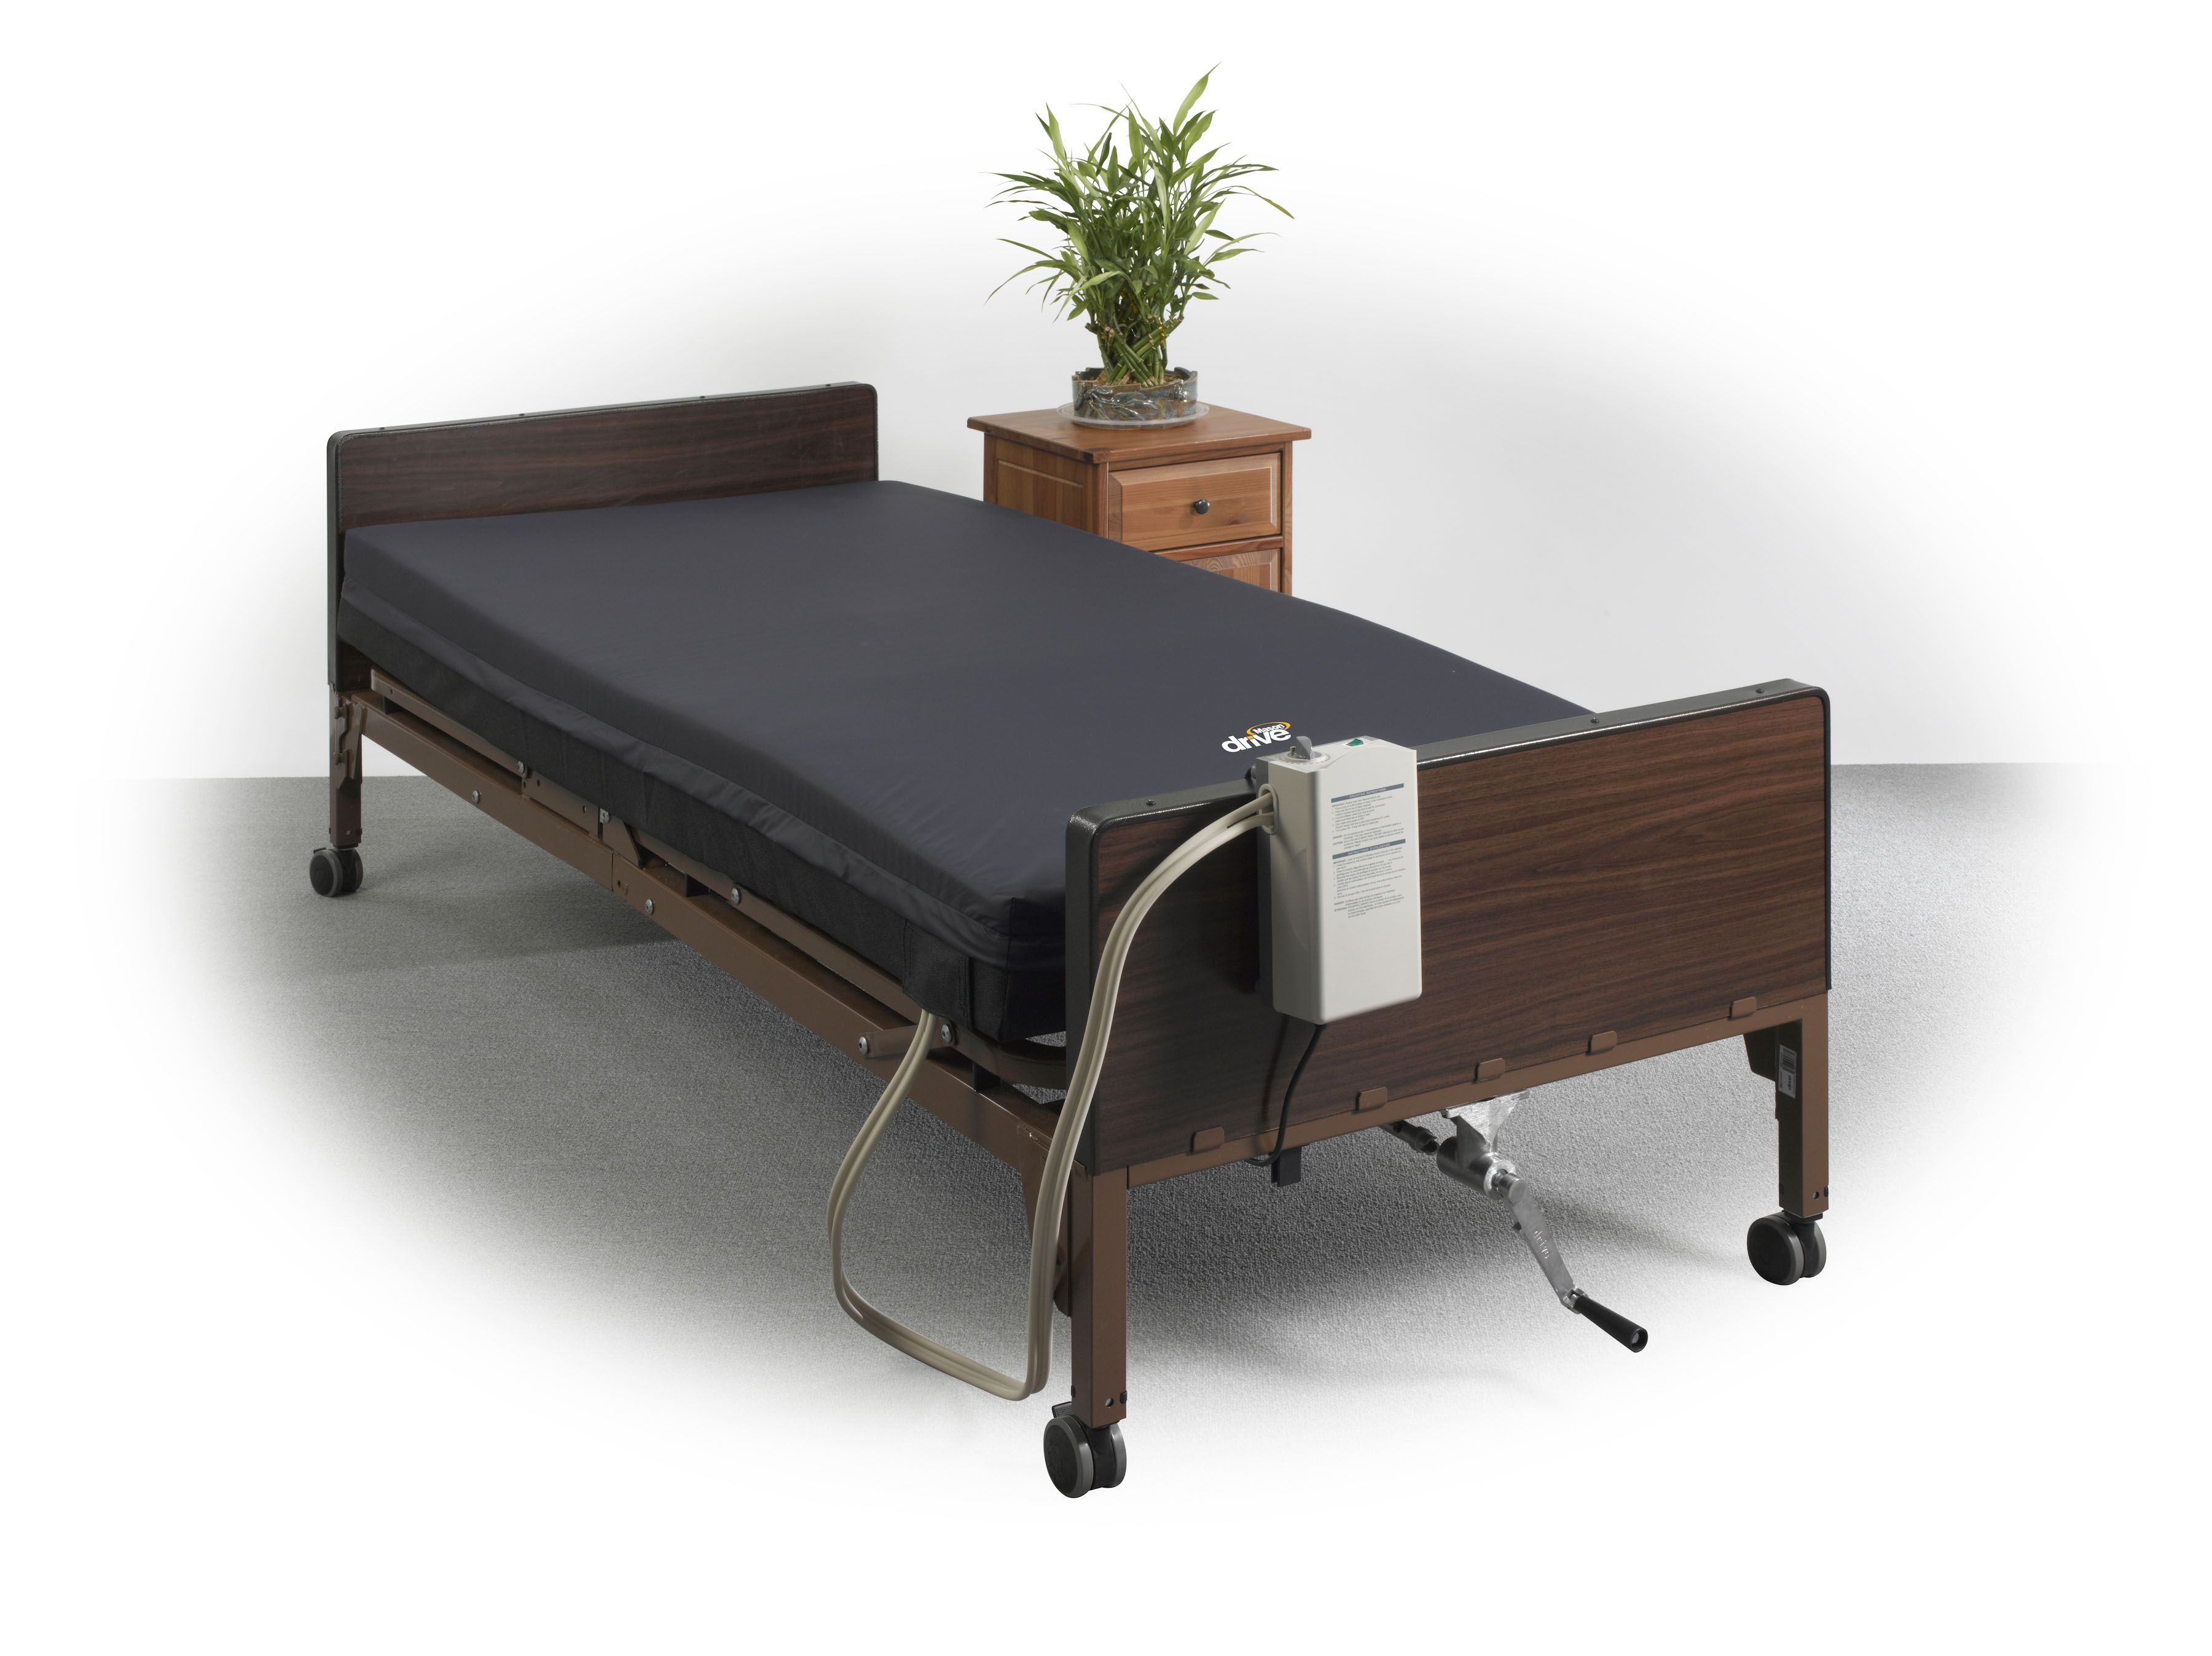 Sports & Outdoors Comfort mattress, Most comfortable bed